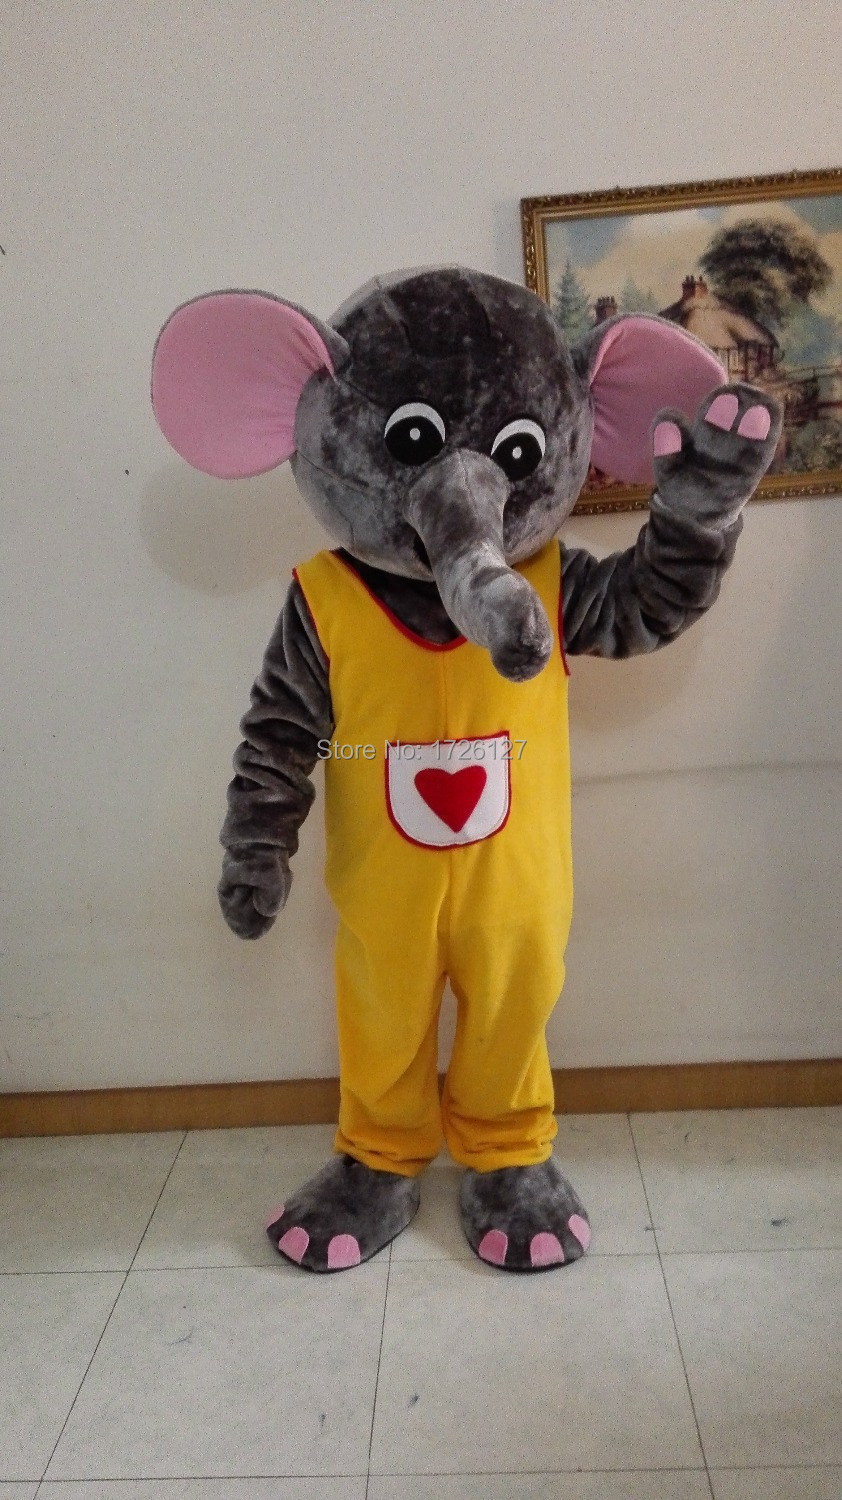 yellow suit red heart elephant mascot Costume custom fancy costume anime cosplay kit mascotte theme fancy dress carnival costume